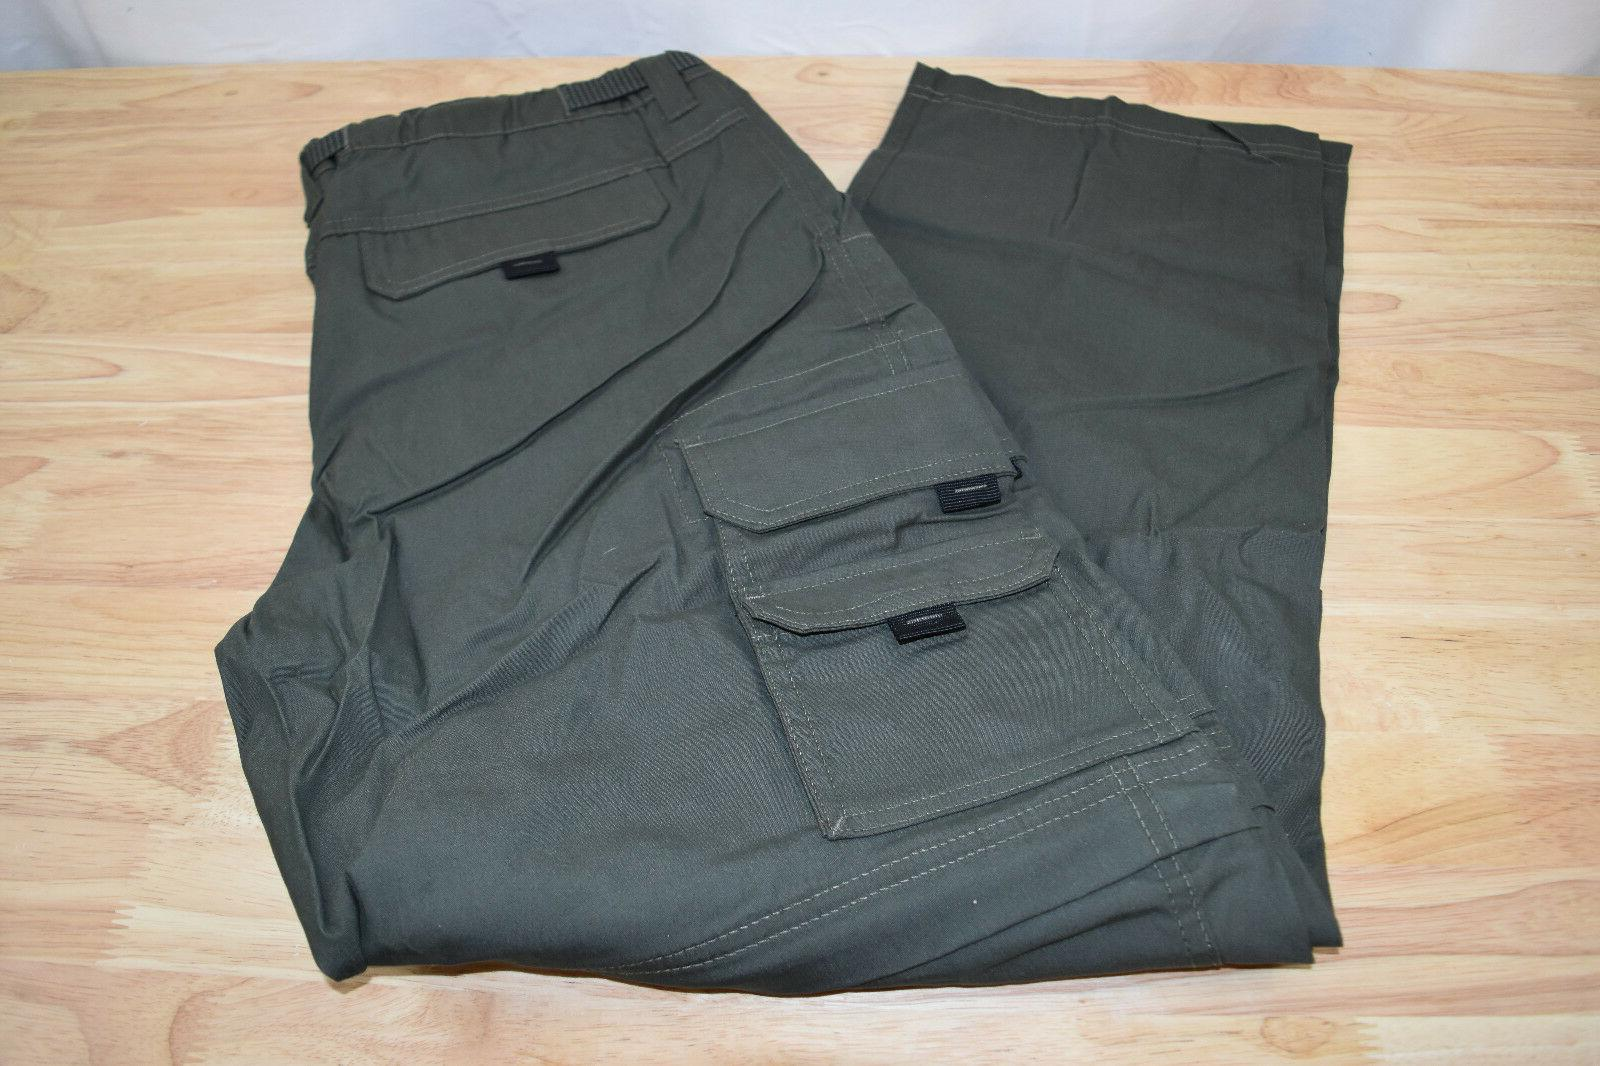 NWT Clothing Convertible Hiking Shorts Stretch VARIETY!